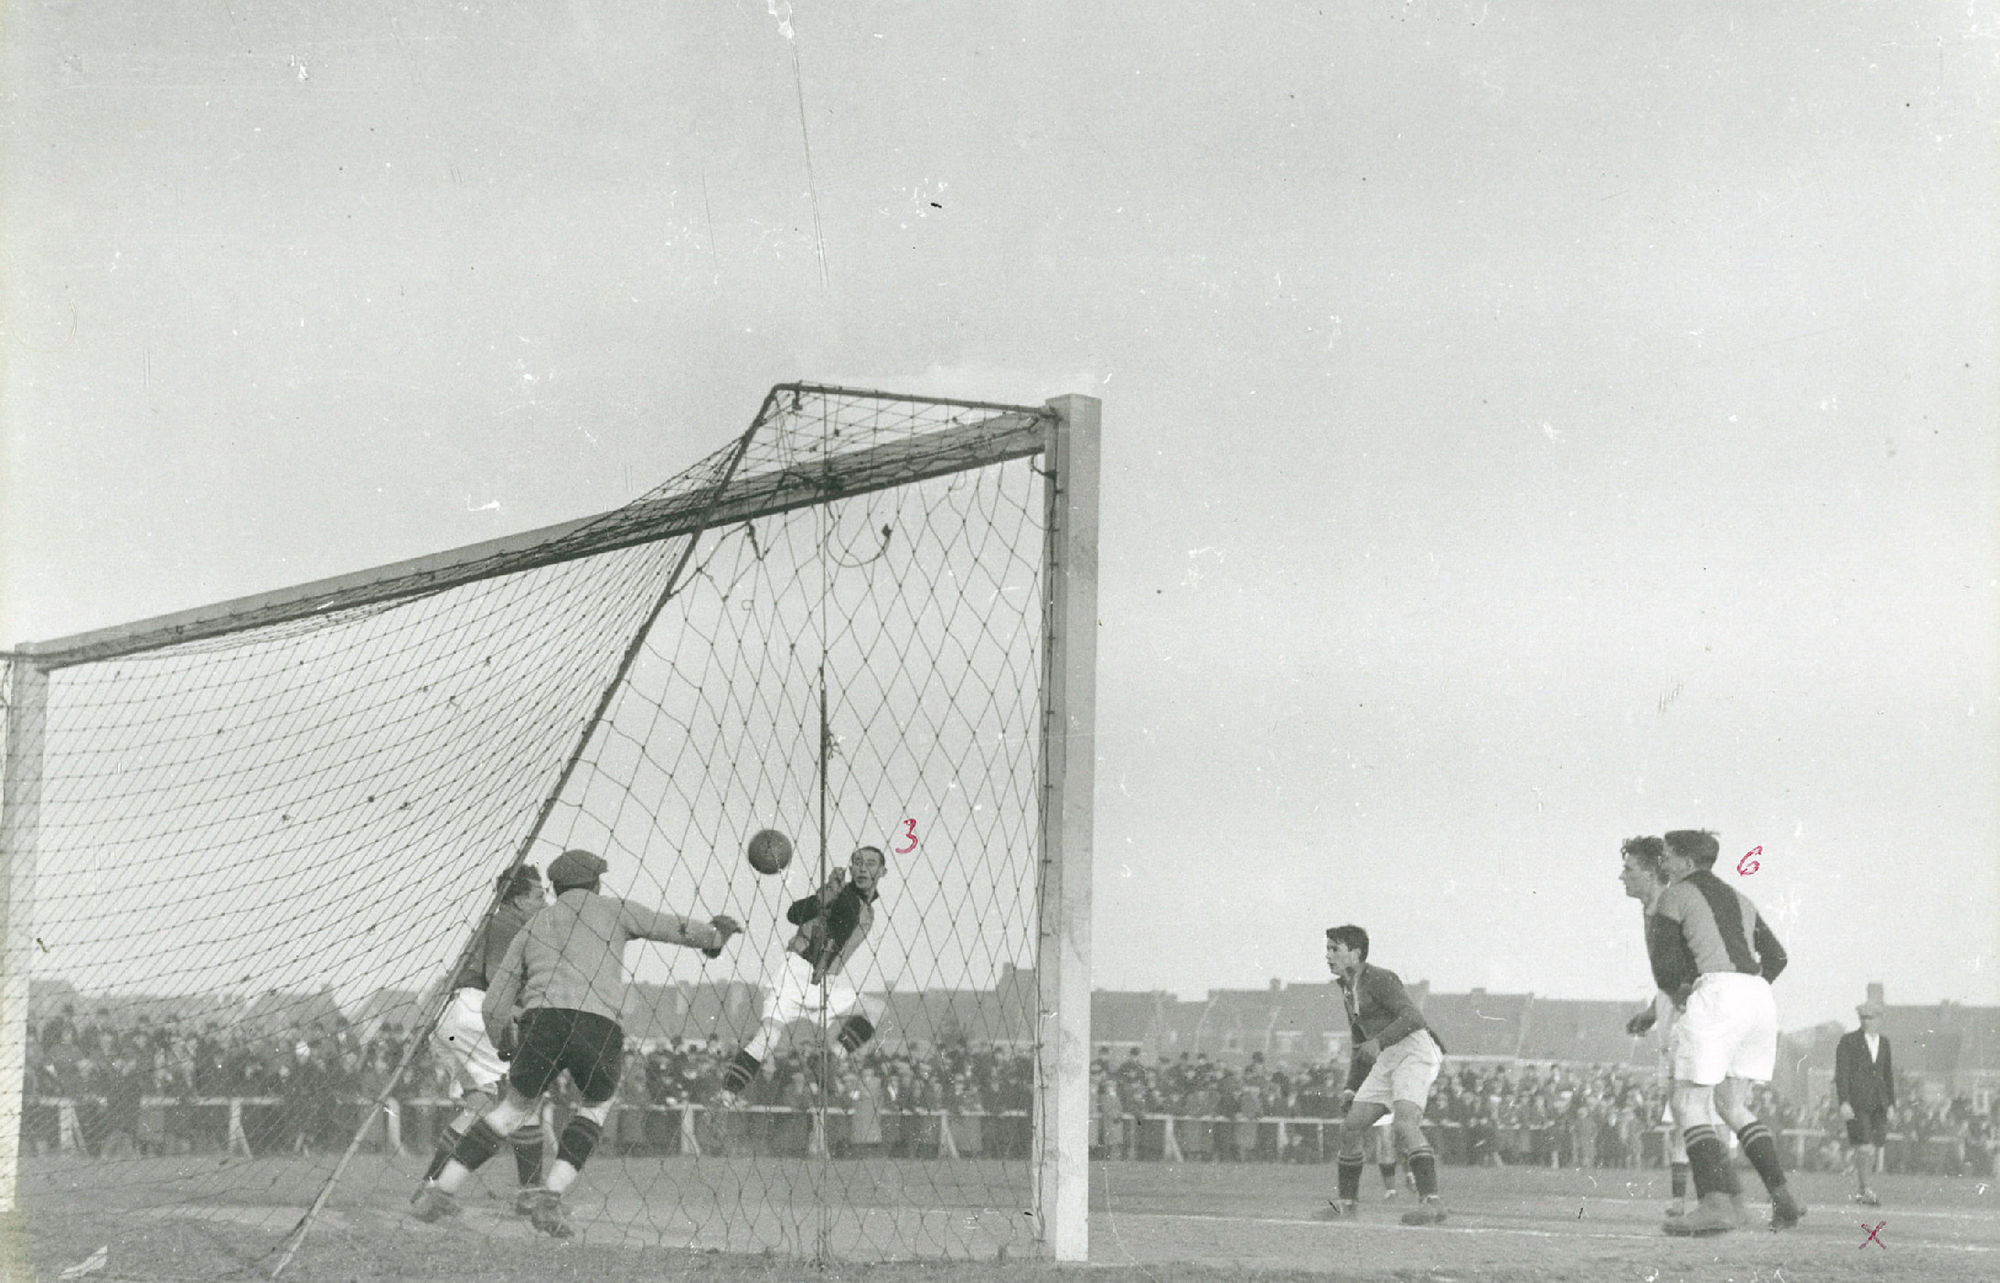 Voetbalmatch in 1934 of 1935